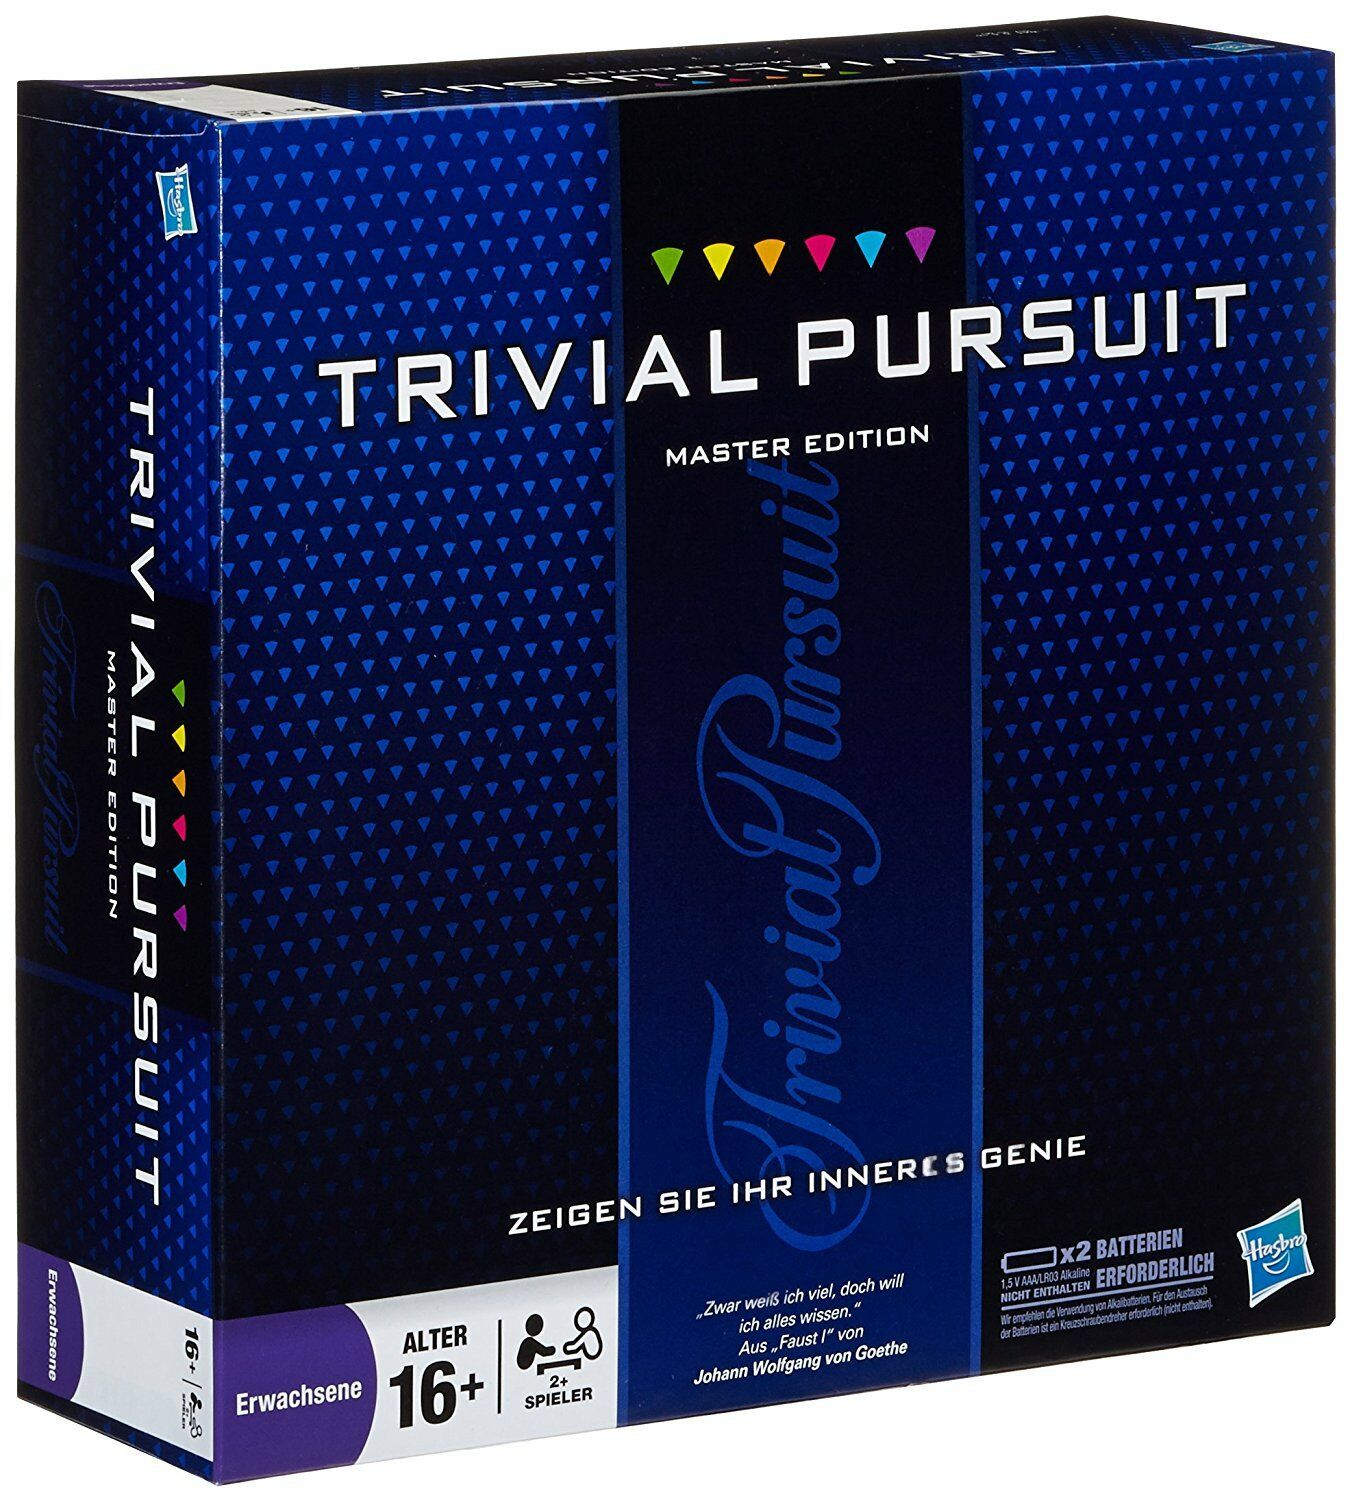 Trivial PURSUIT Master Edition tutto in tedesco e come nuova. RAR